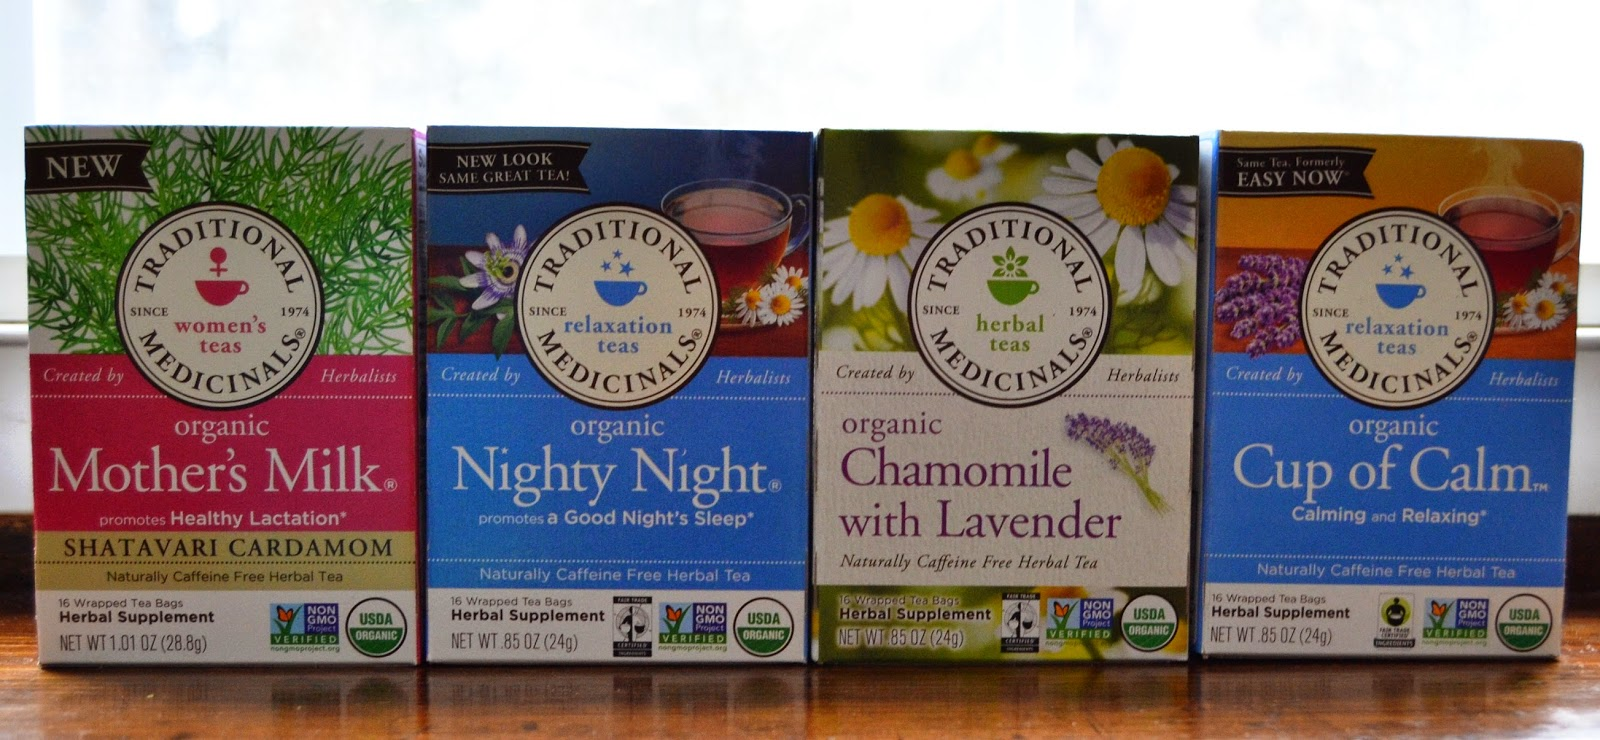 Traditional Medicinals Relaxation Teas